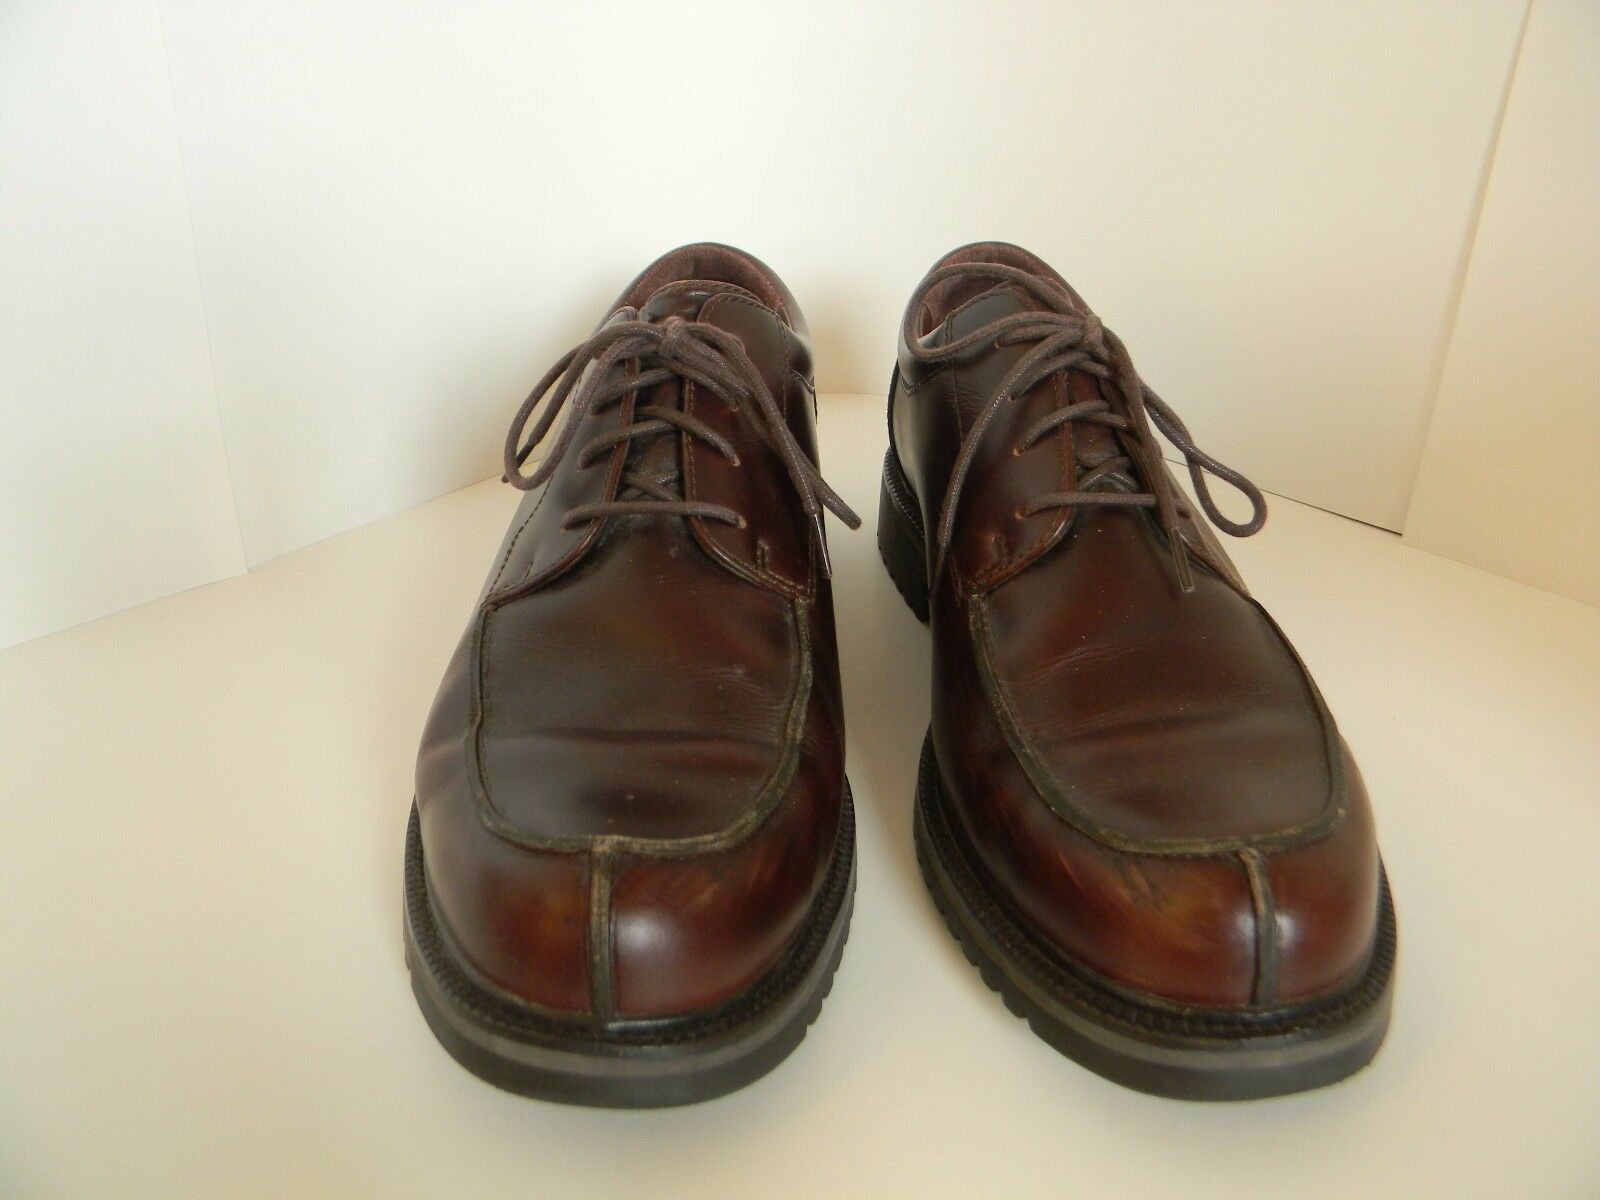 Mens Cole Haan Burgandy Country Waterproof Oxford shoes Size 11M